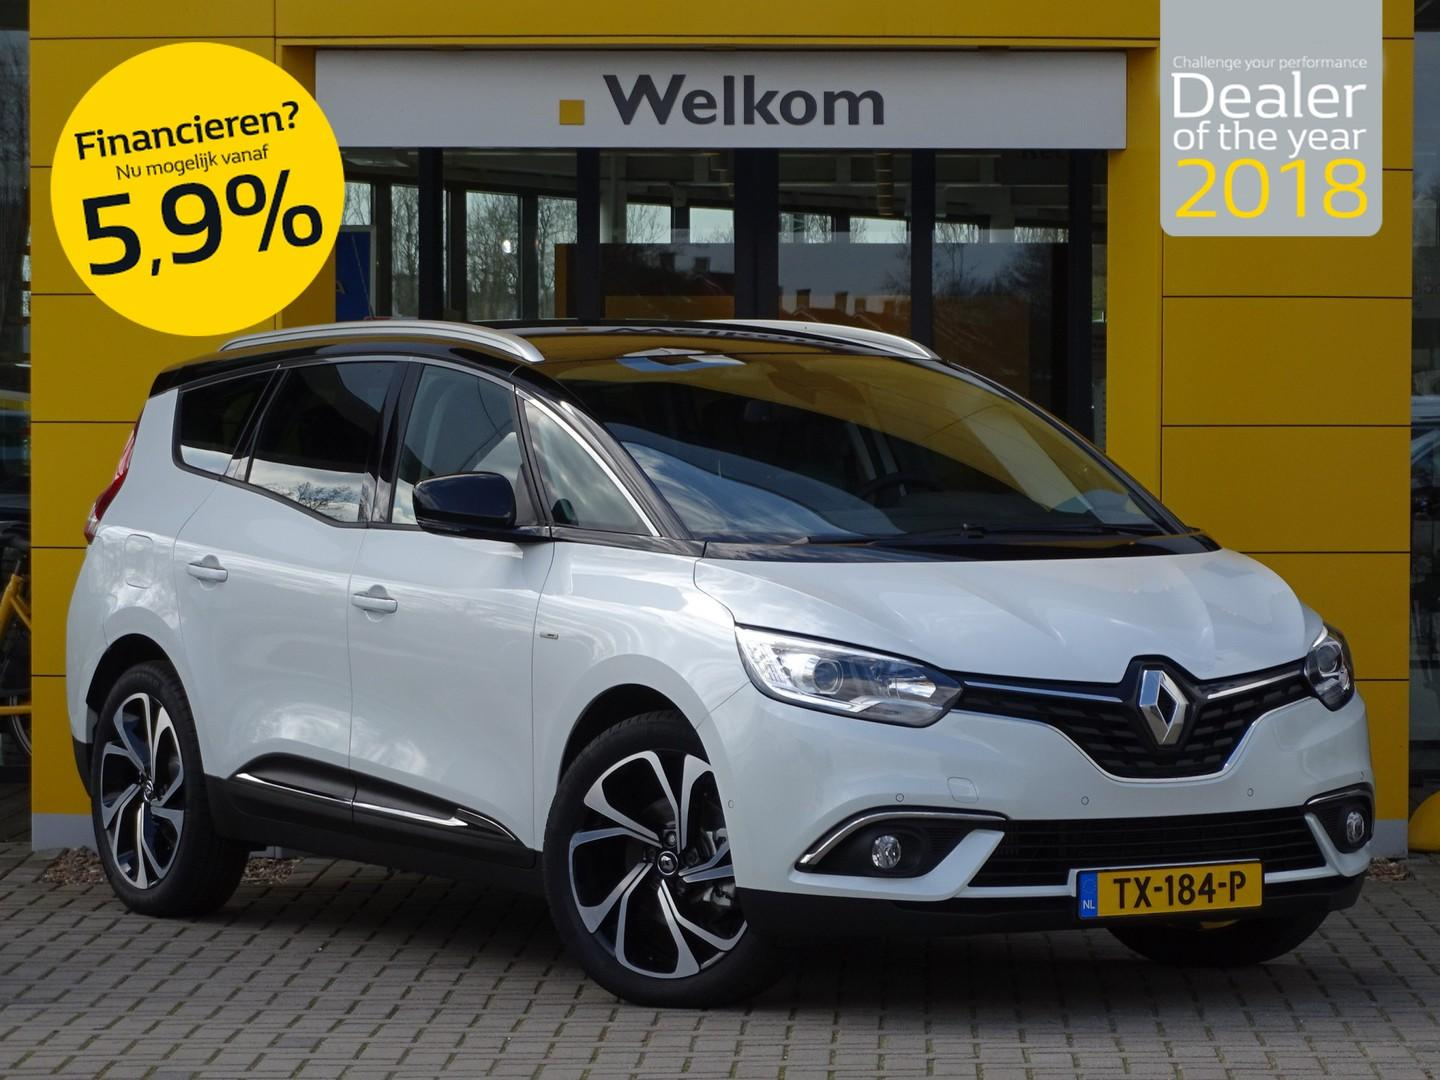 Renault Grand scénic 1.5 dci 110pk edc/aut.7 bose 7-persoons